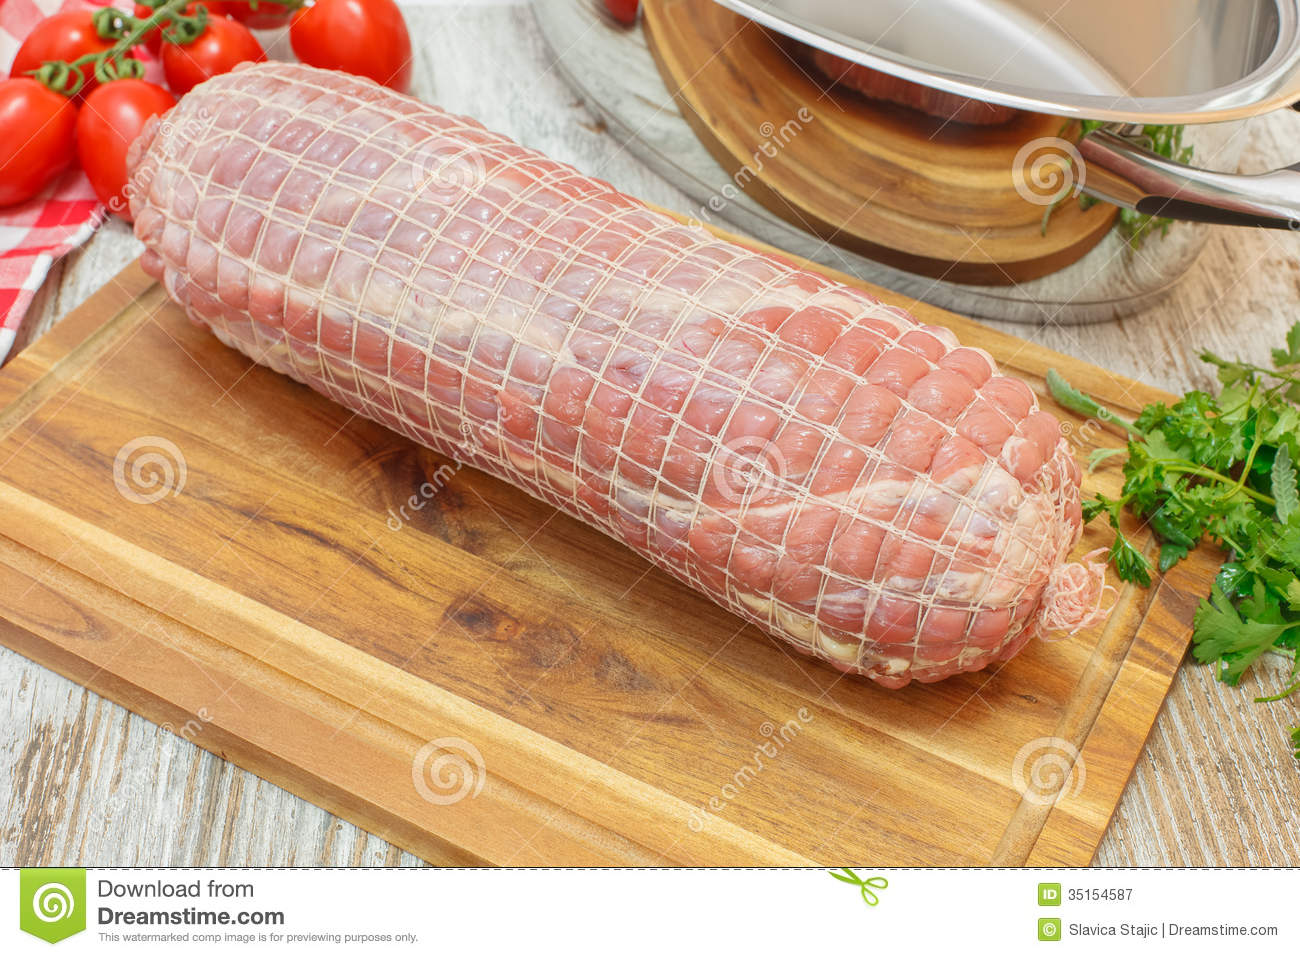 Raw Veal Roulade Royalty-Free Stock Image